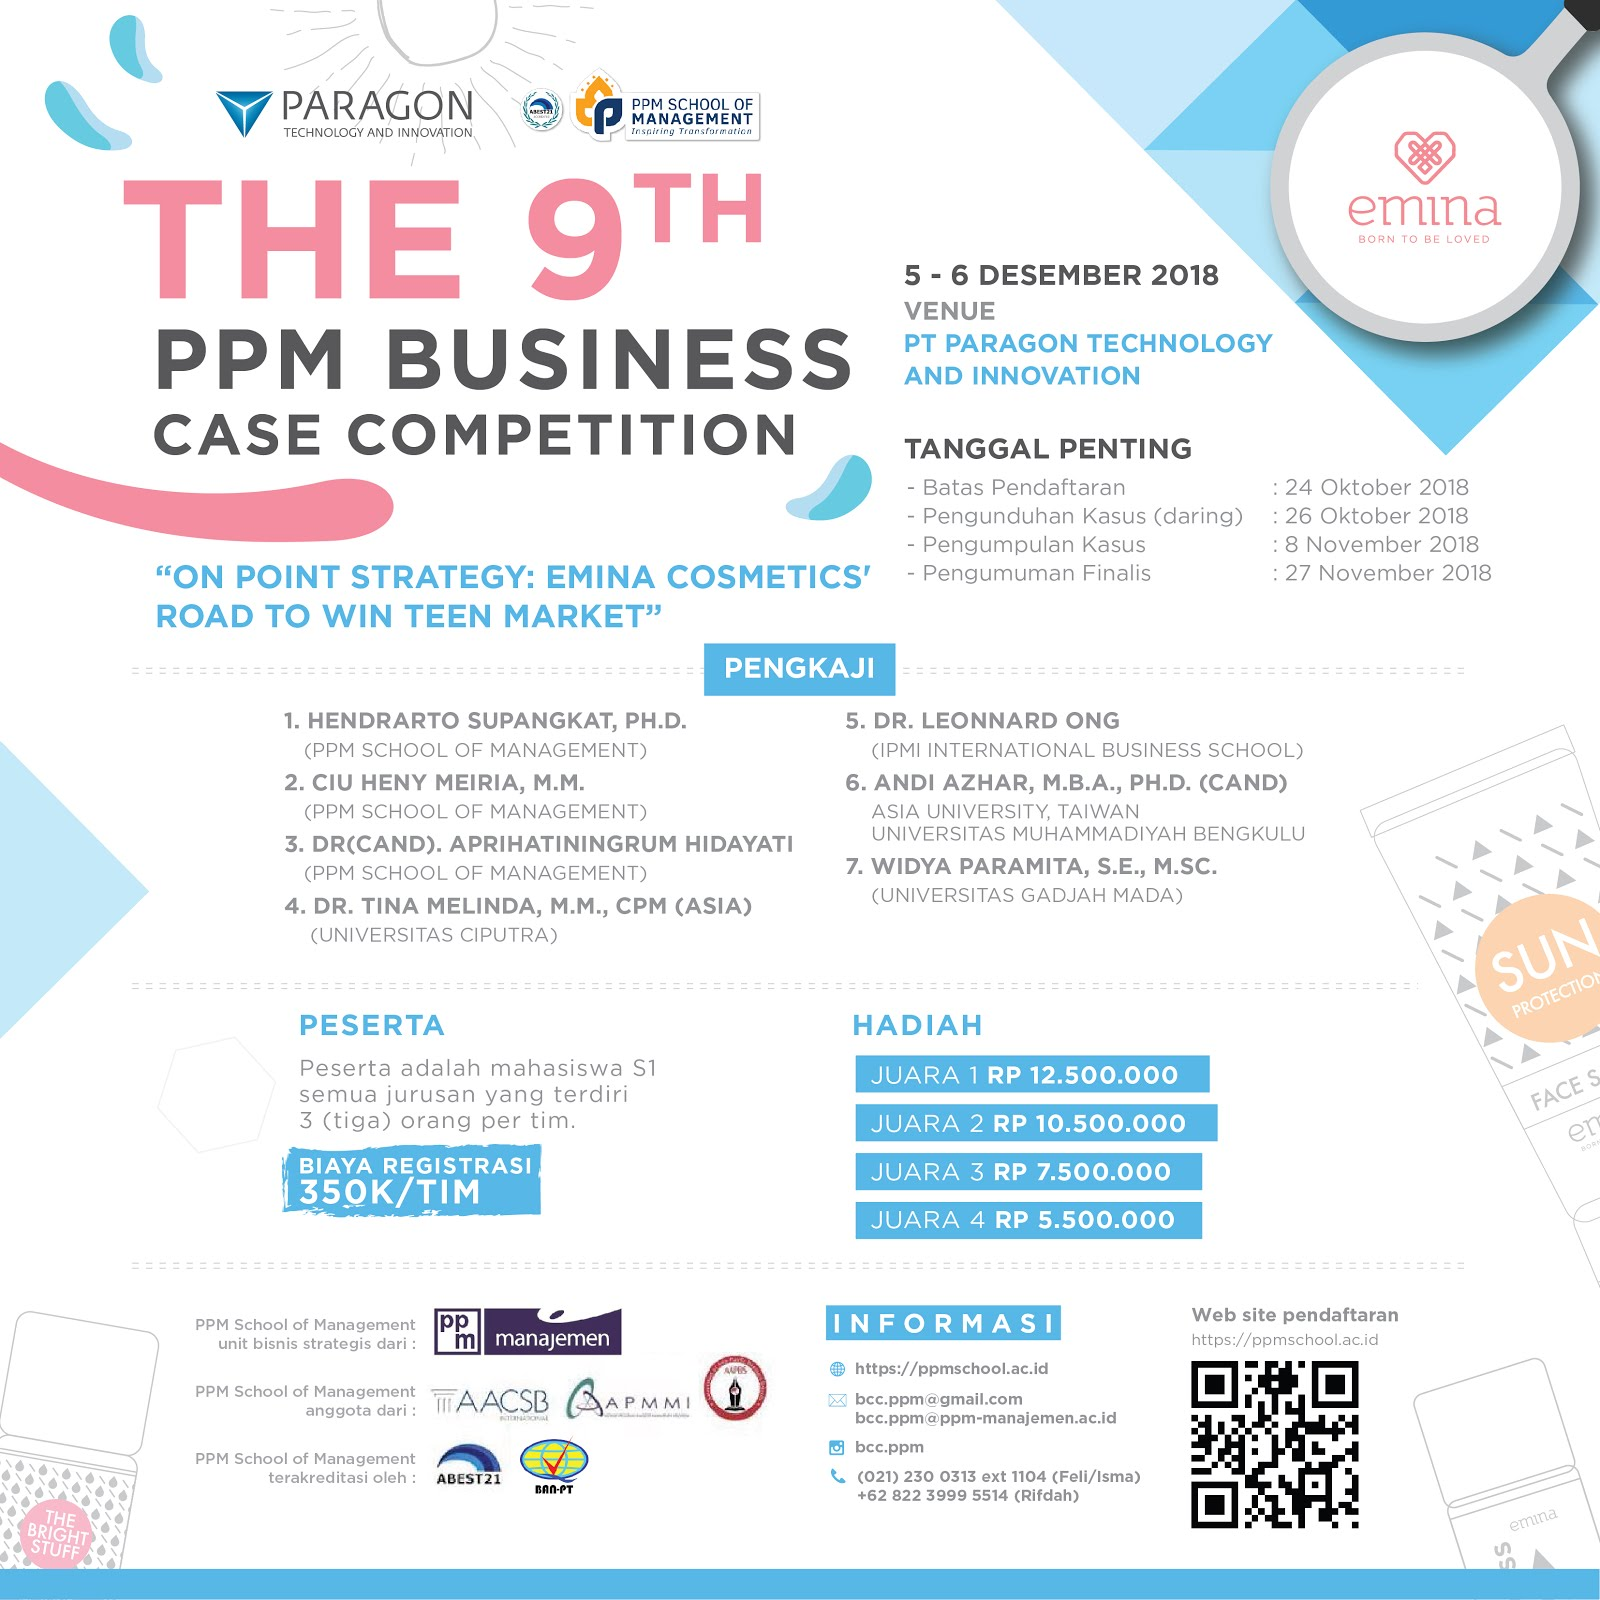 The 9th PPM Business Case Competition